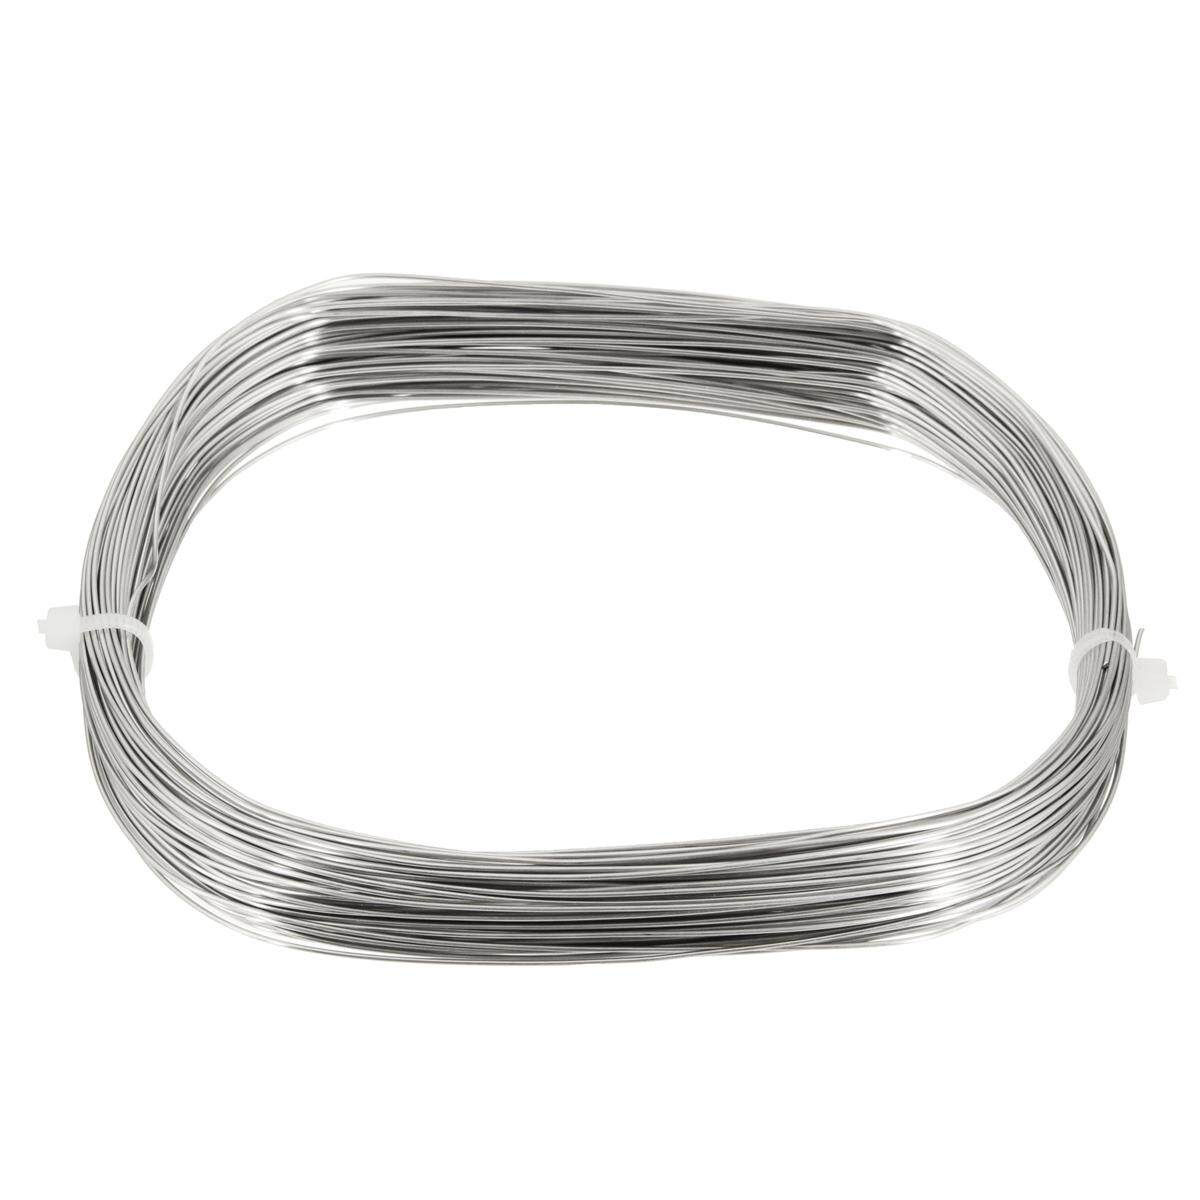 304 Stainless Steel Bright Single Wire Rope 0.6mm Dia 1/4 100ft 30M/1181.1